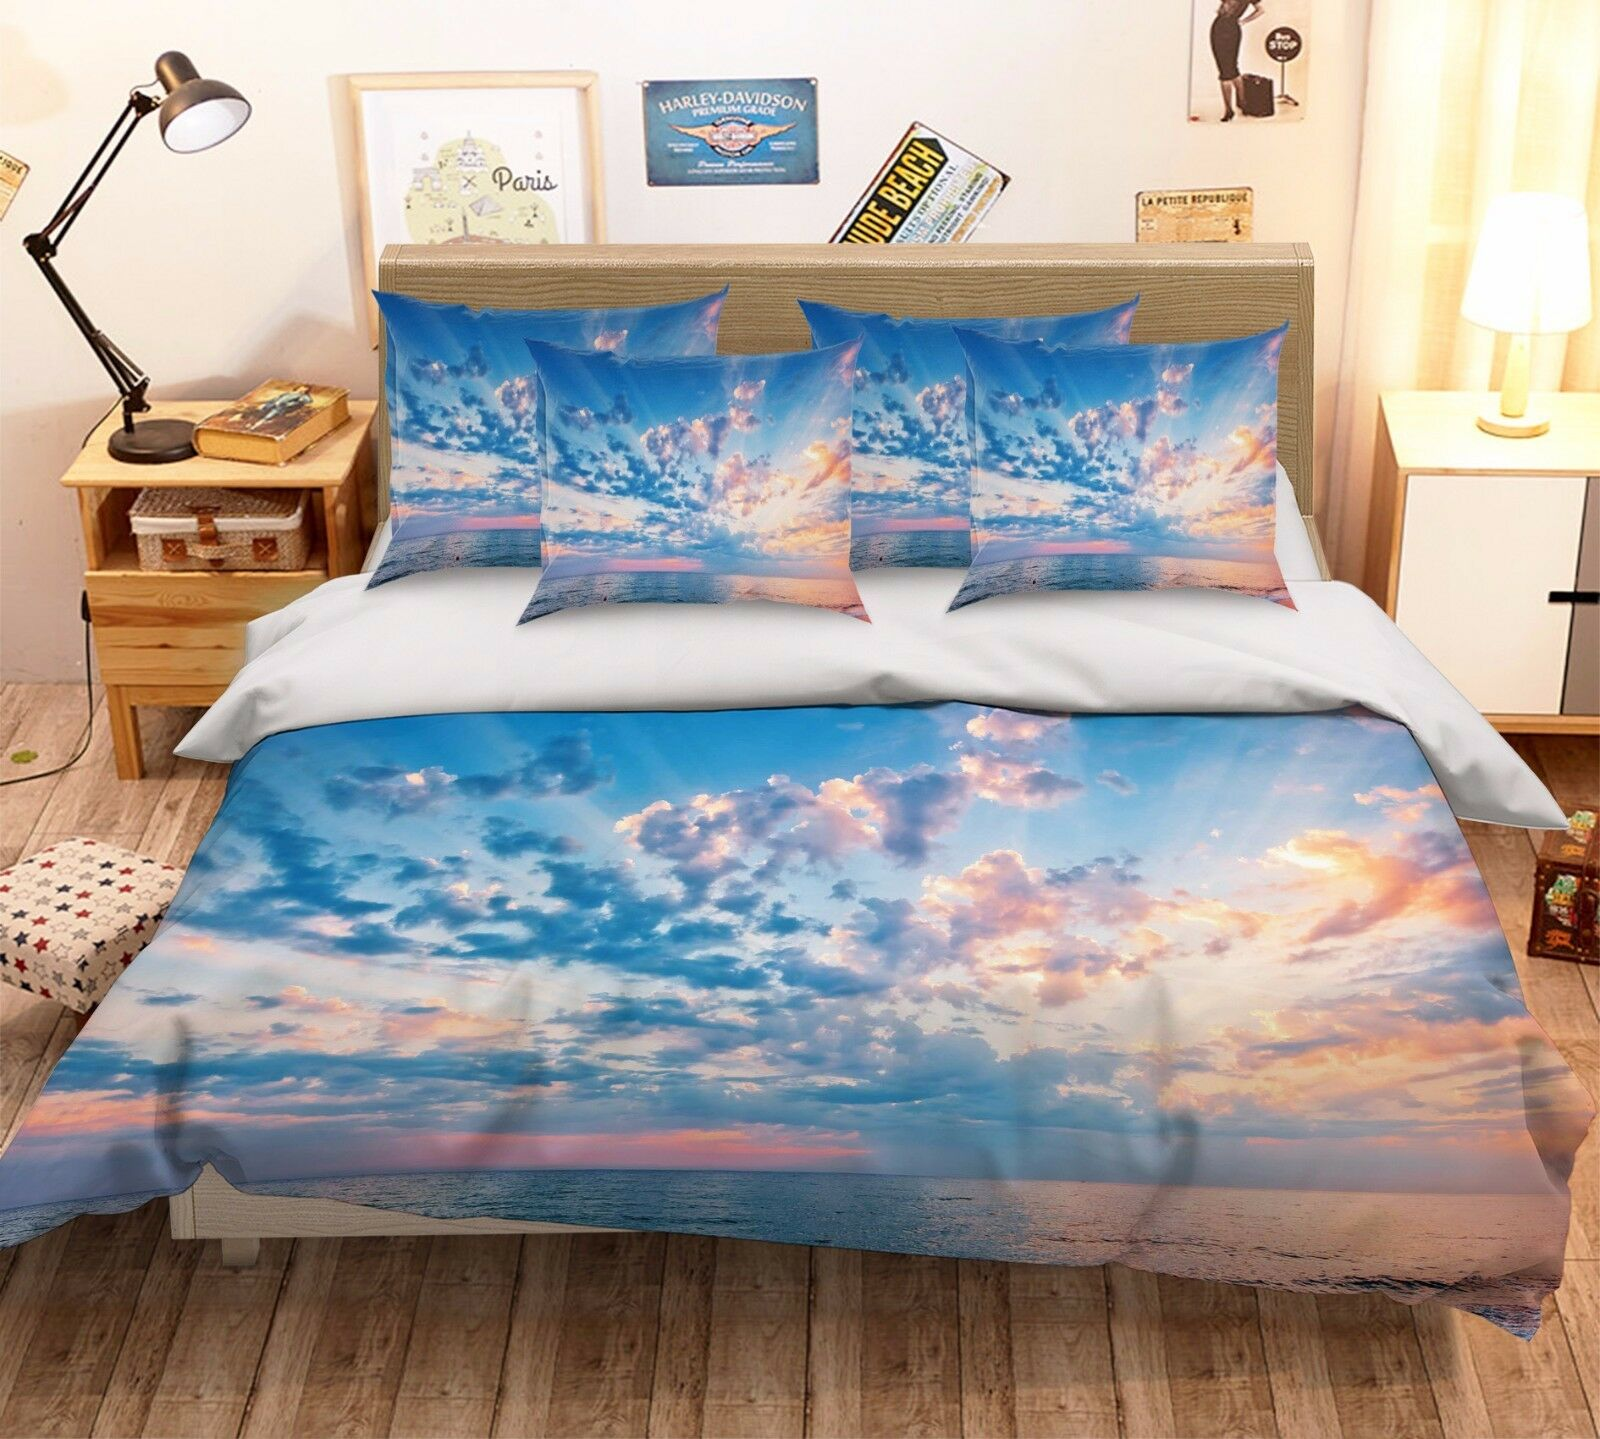 Boho Quilt Covers Australia 3d Vast 384 Bed Quilt Duvet Cover Set Single Queen King Size Au